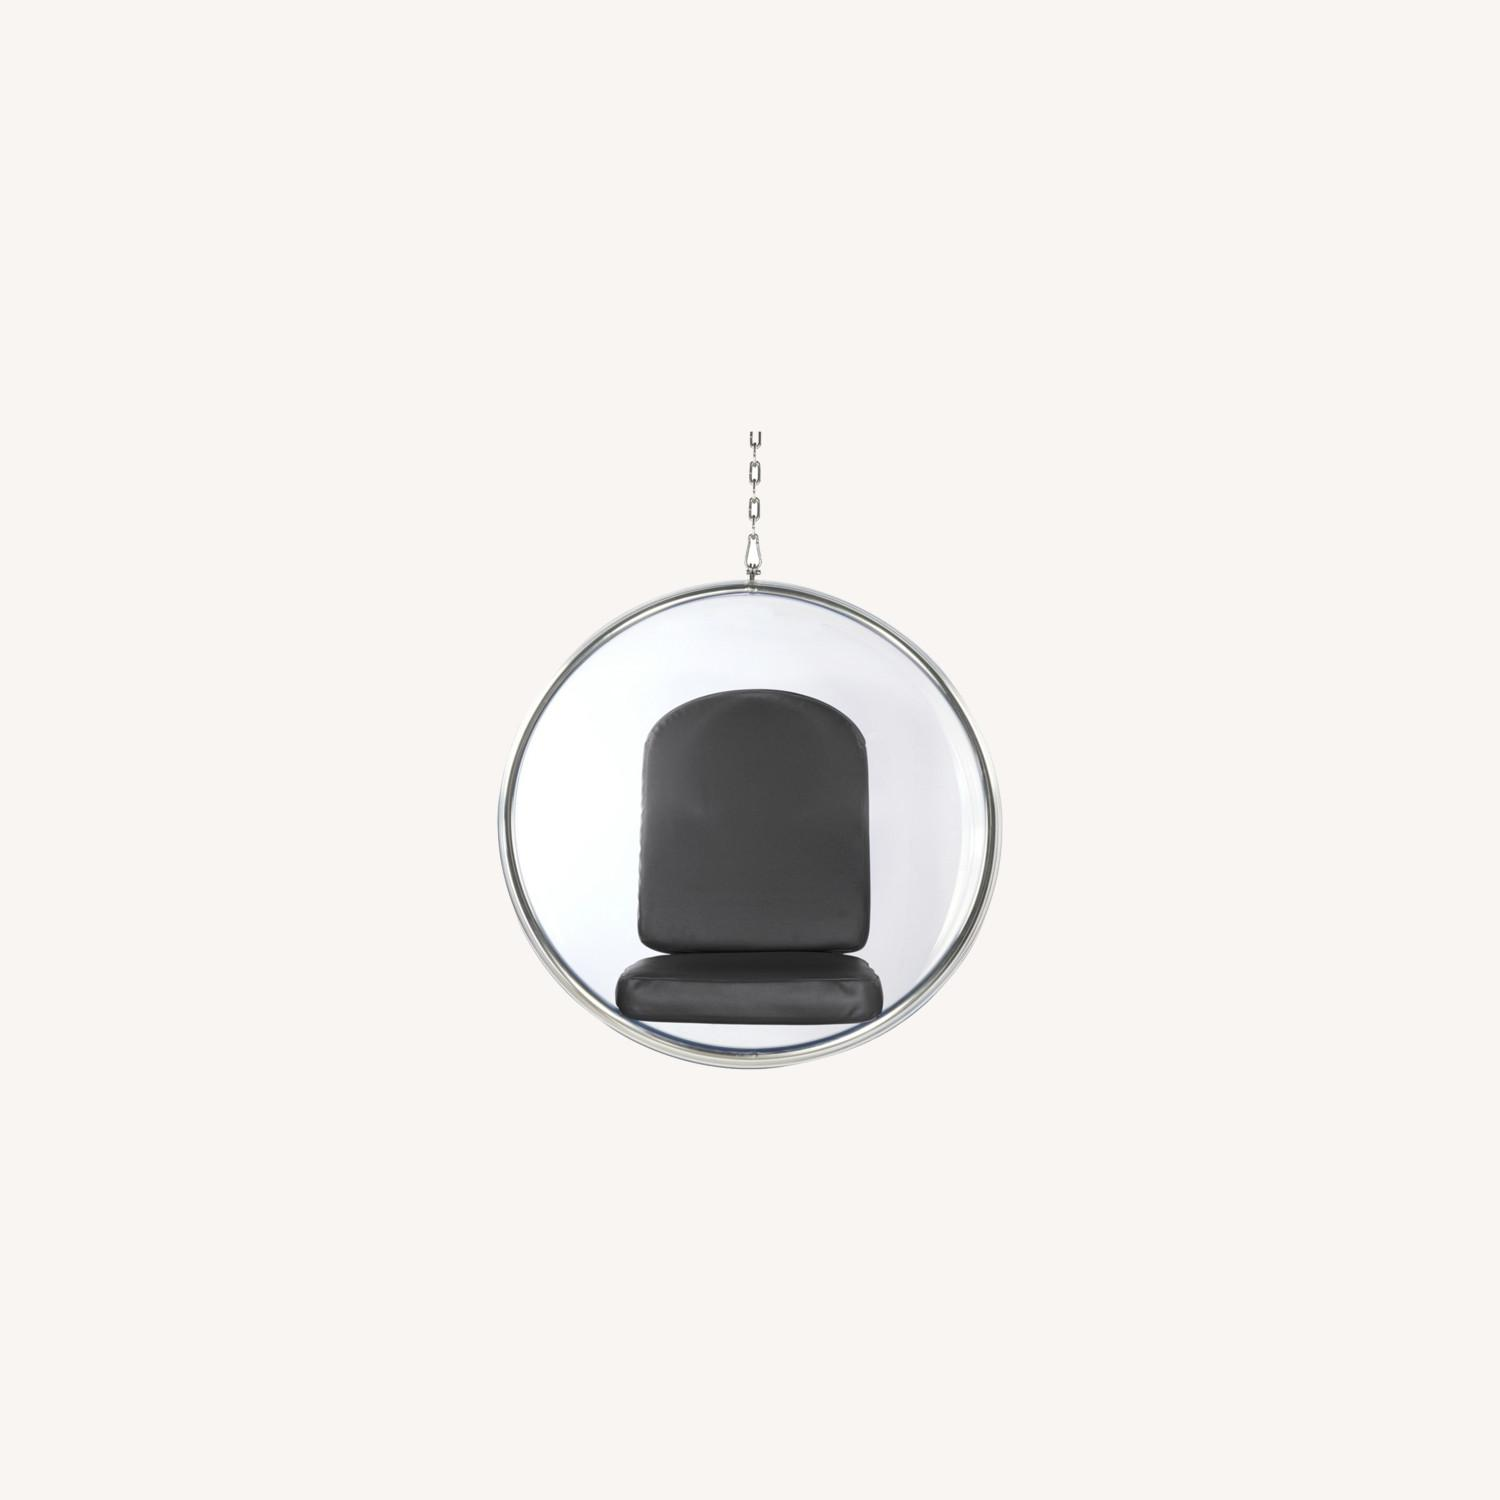 Hanging Chair In Clear Acrylic & Gray PU Leather - image-6